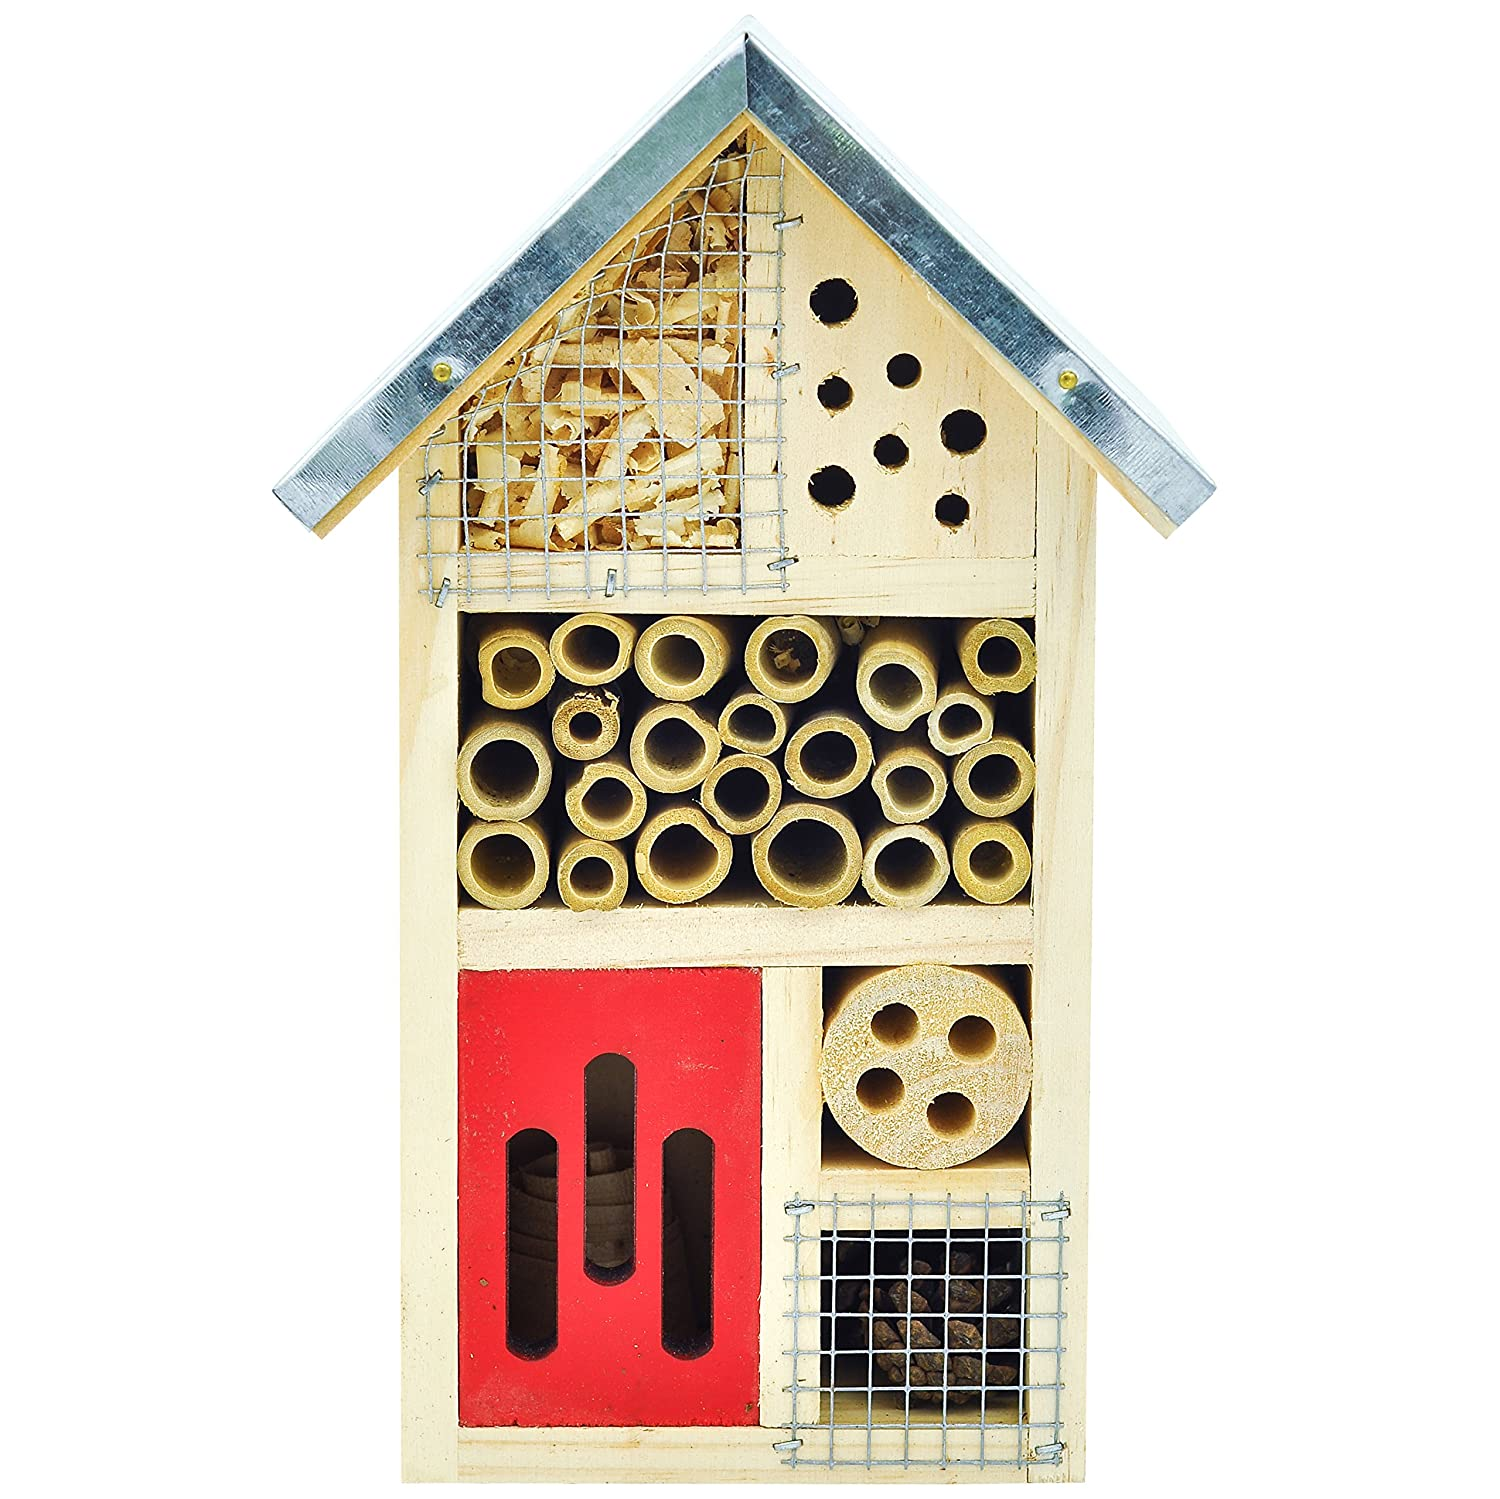 NiteangeL® Wooden Insect House, Perfect Home for Ladybirds and Lacewings, as well as Bees, 10x6x3.5 inch (25.3x15.2x8.7 cm)